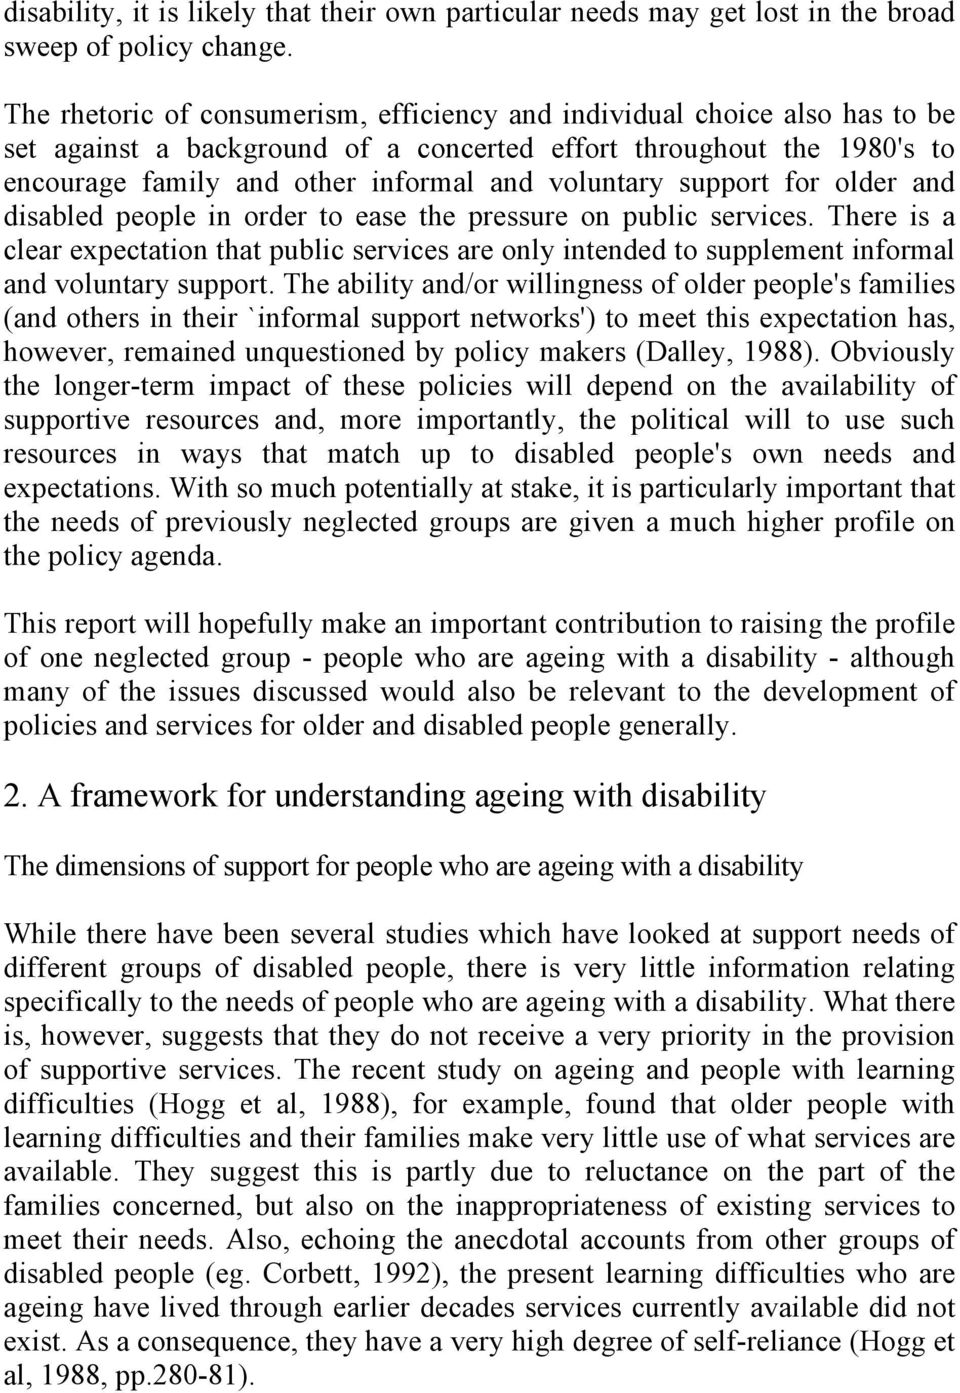 support for older and disabled people in order to ease the pressure on public services.